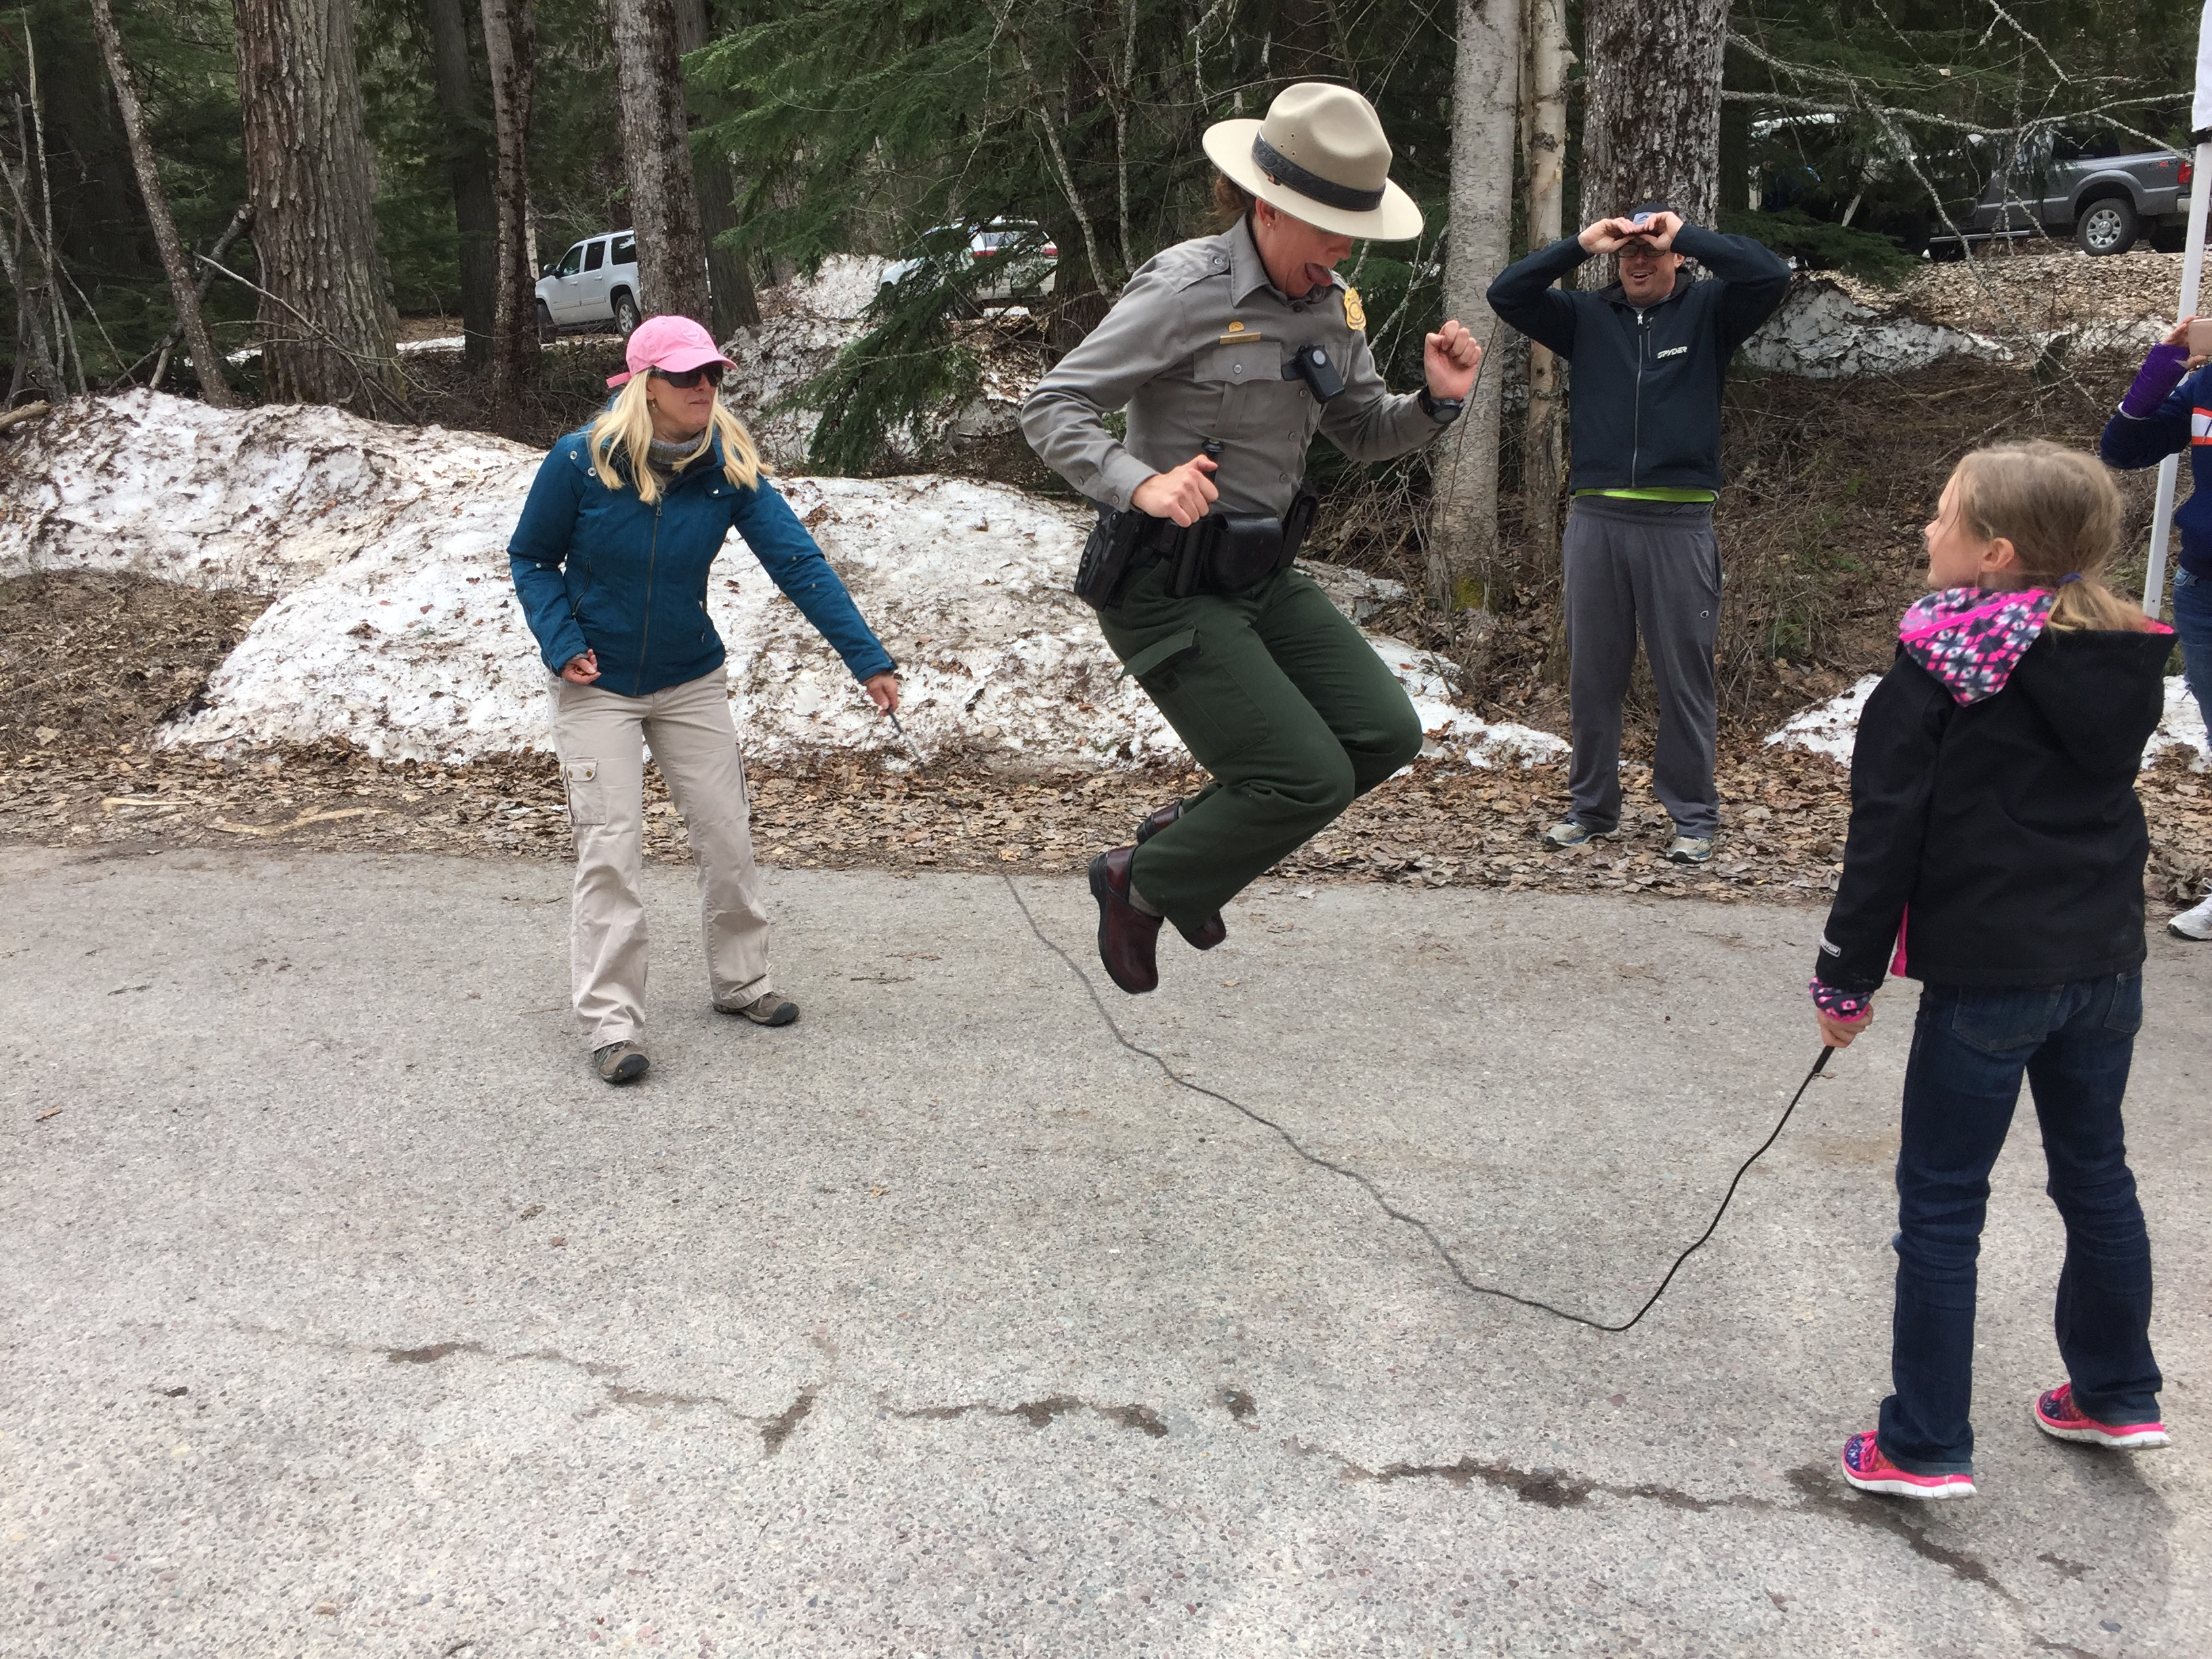 A park ranger wearing a flat hat jumps rope with two visitors.